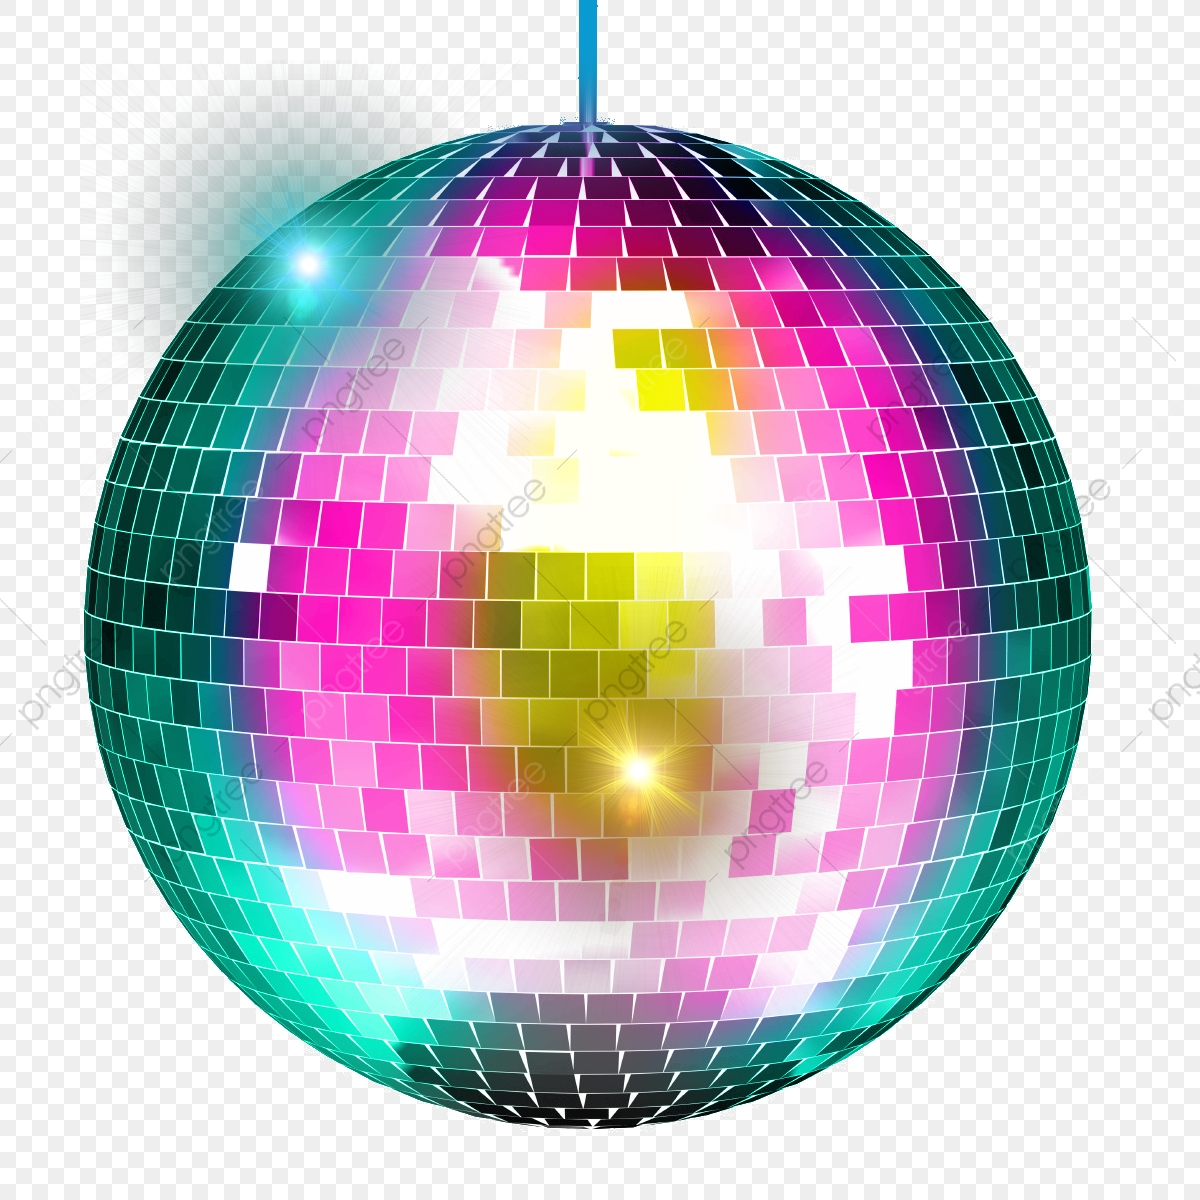 hight resolution of commercial use resource upgrade to premium plan and get license authorization upgradenow disco ball